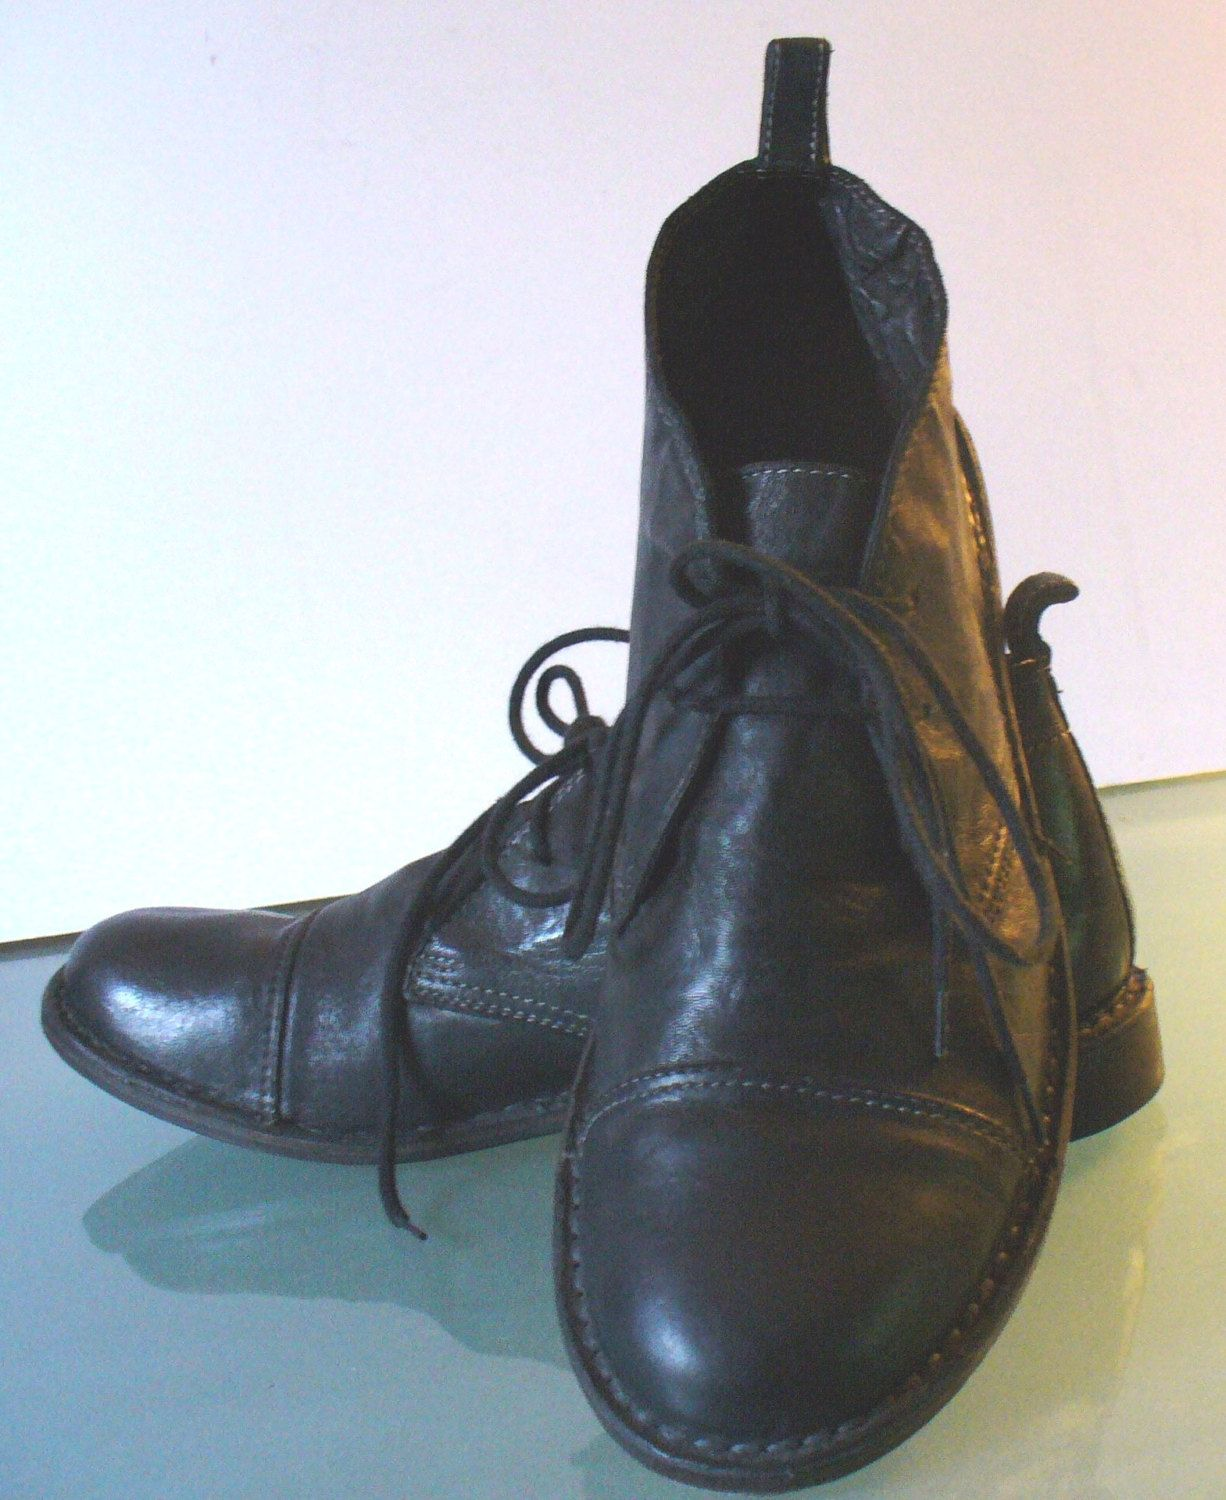 Cooperative Johnston Murphy Black Leather Slip On Loafer Dress Shoes Size 10m Attractive Appearance Dress Shoes